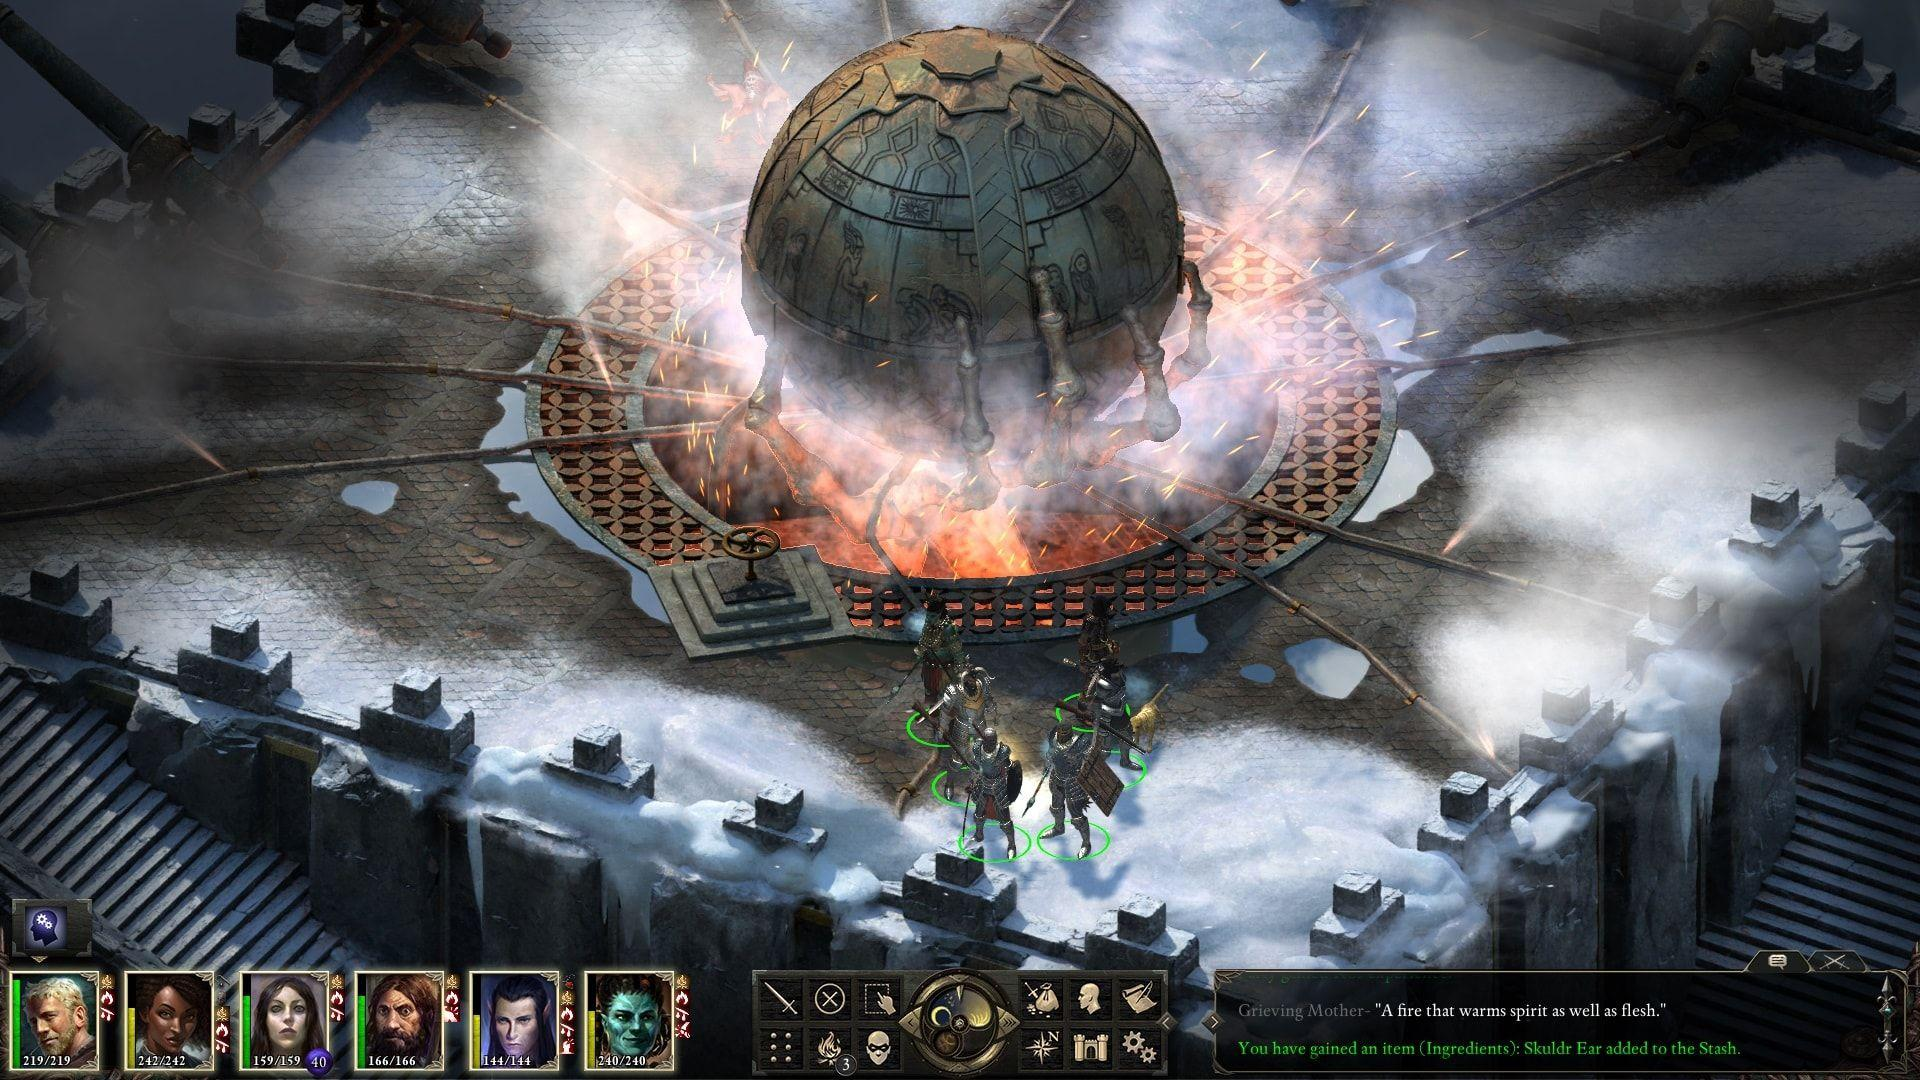 Pillars Of Eternity Wallpaper: Eternity Wallpapers